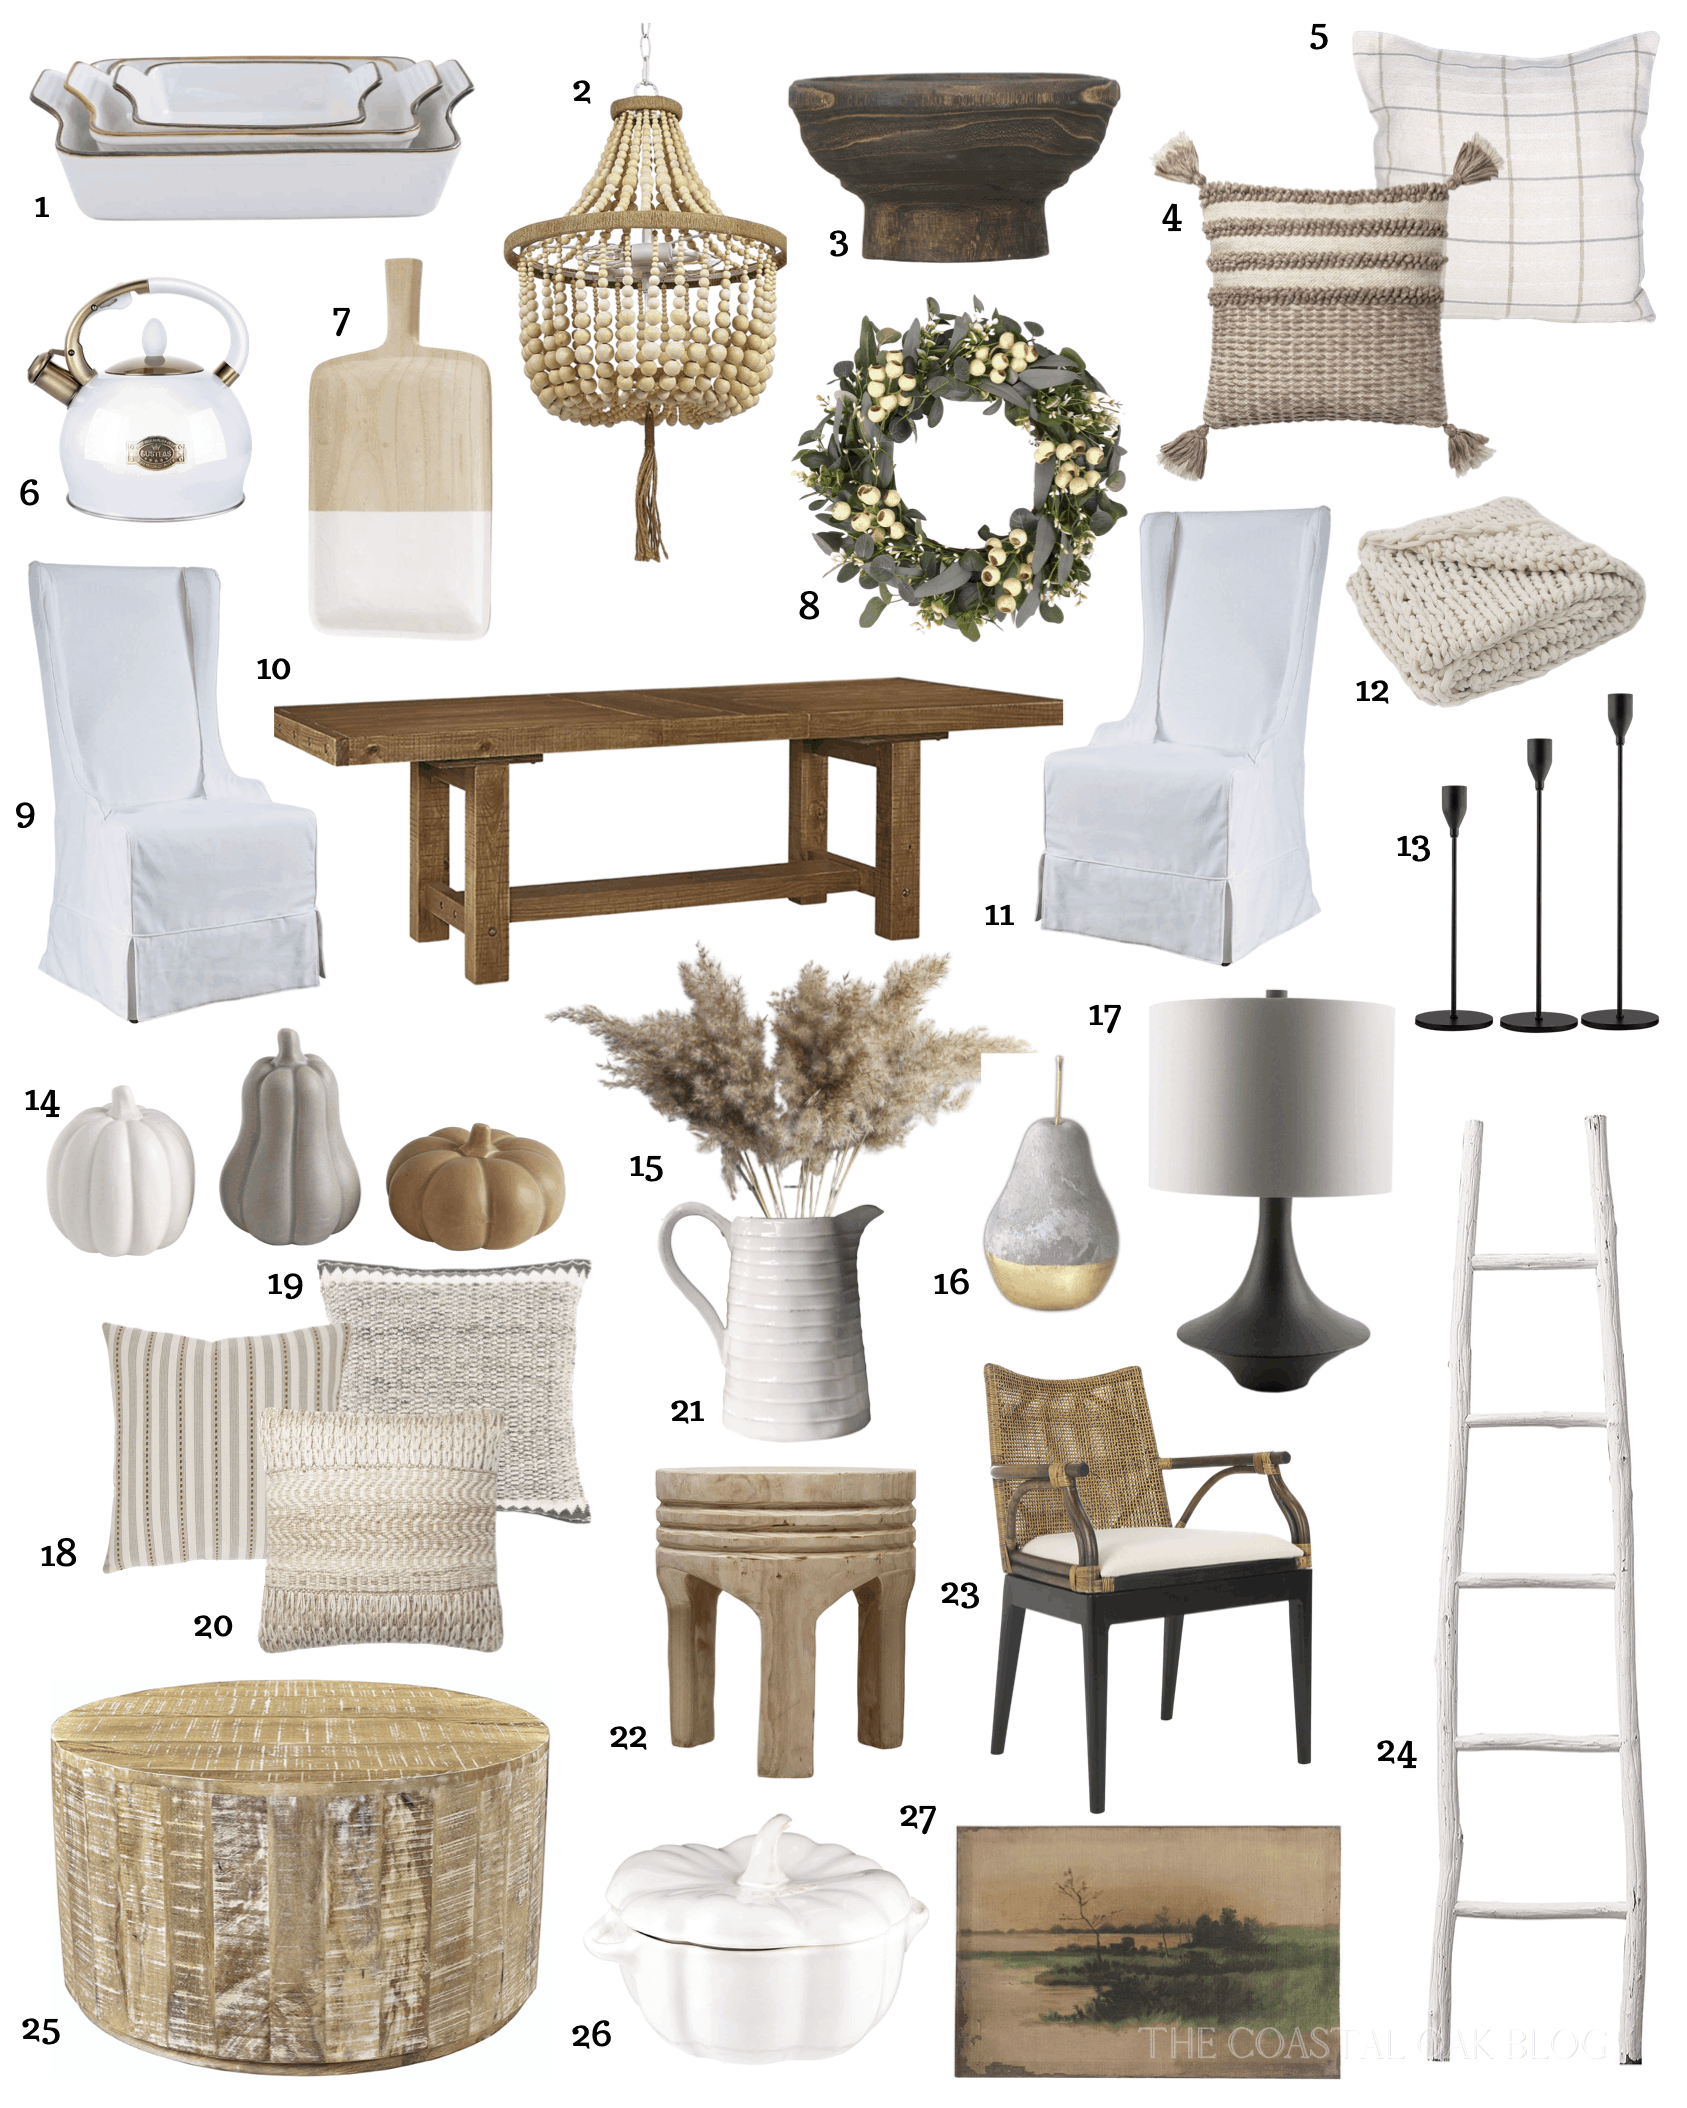 Amazon fall home decor items including neutral, coastal, and cozy fall decor. #coastaldecor #falldecor #fall #amazon #amazonhaul #amazonhomedecor #coastalfall #fallcoastaldecor #neutralfall #pampasgrass #neutraldiningroom #loloi